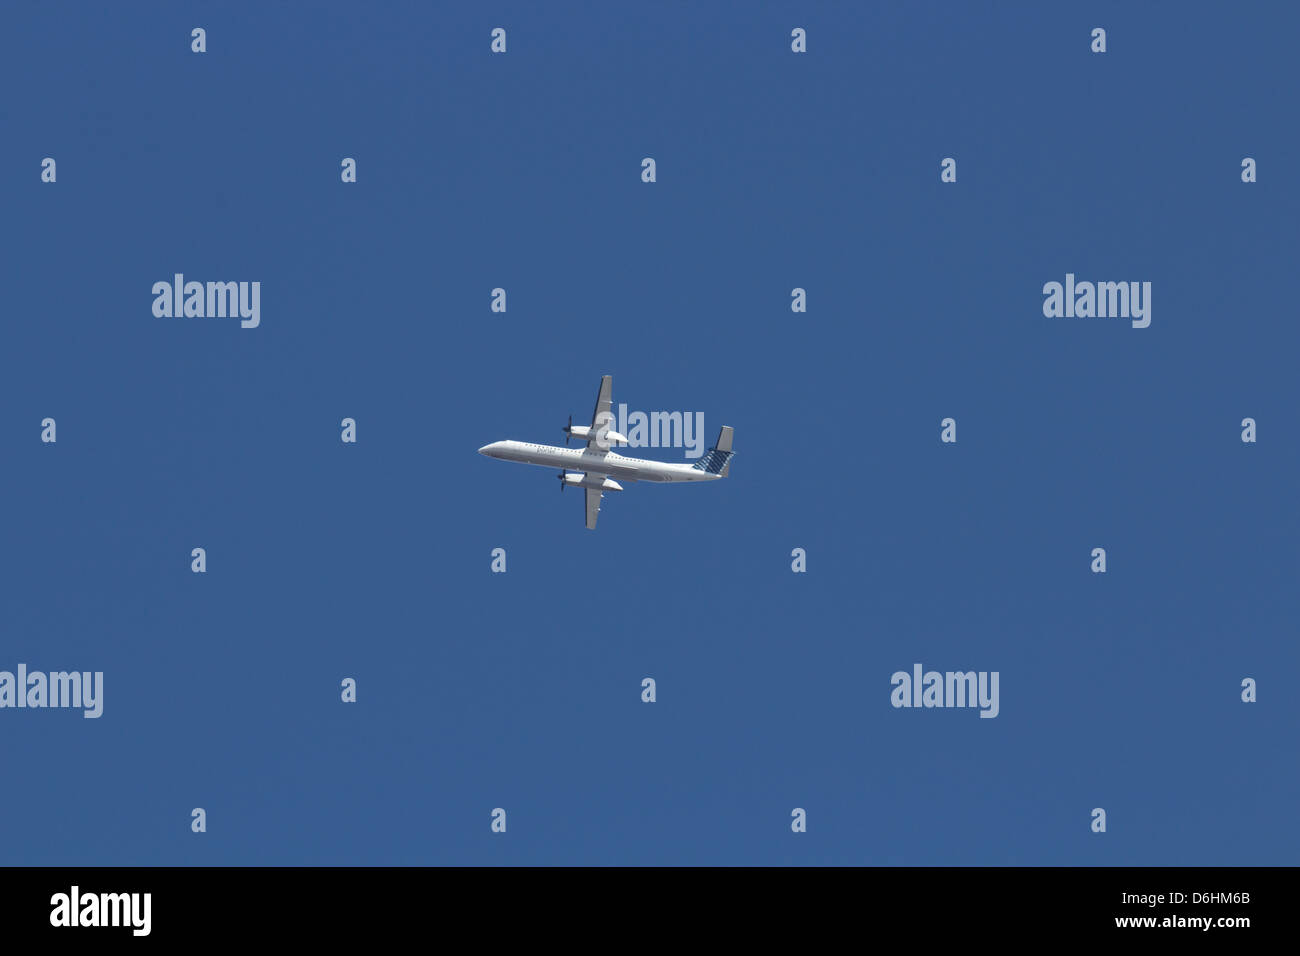 Dash 8 400 flying in a bright blue sky - Stock Image